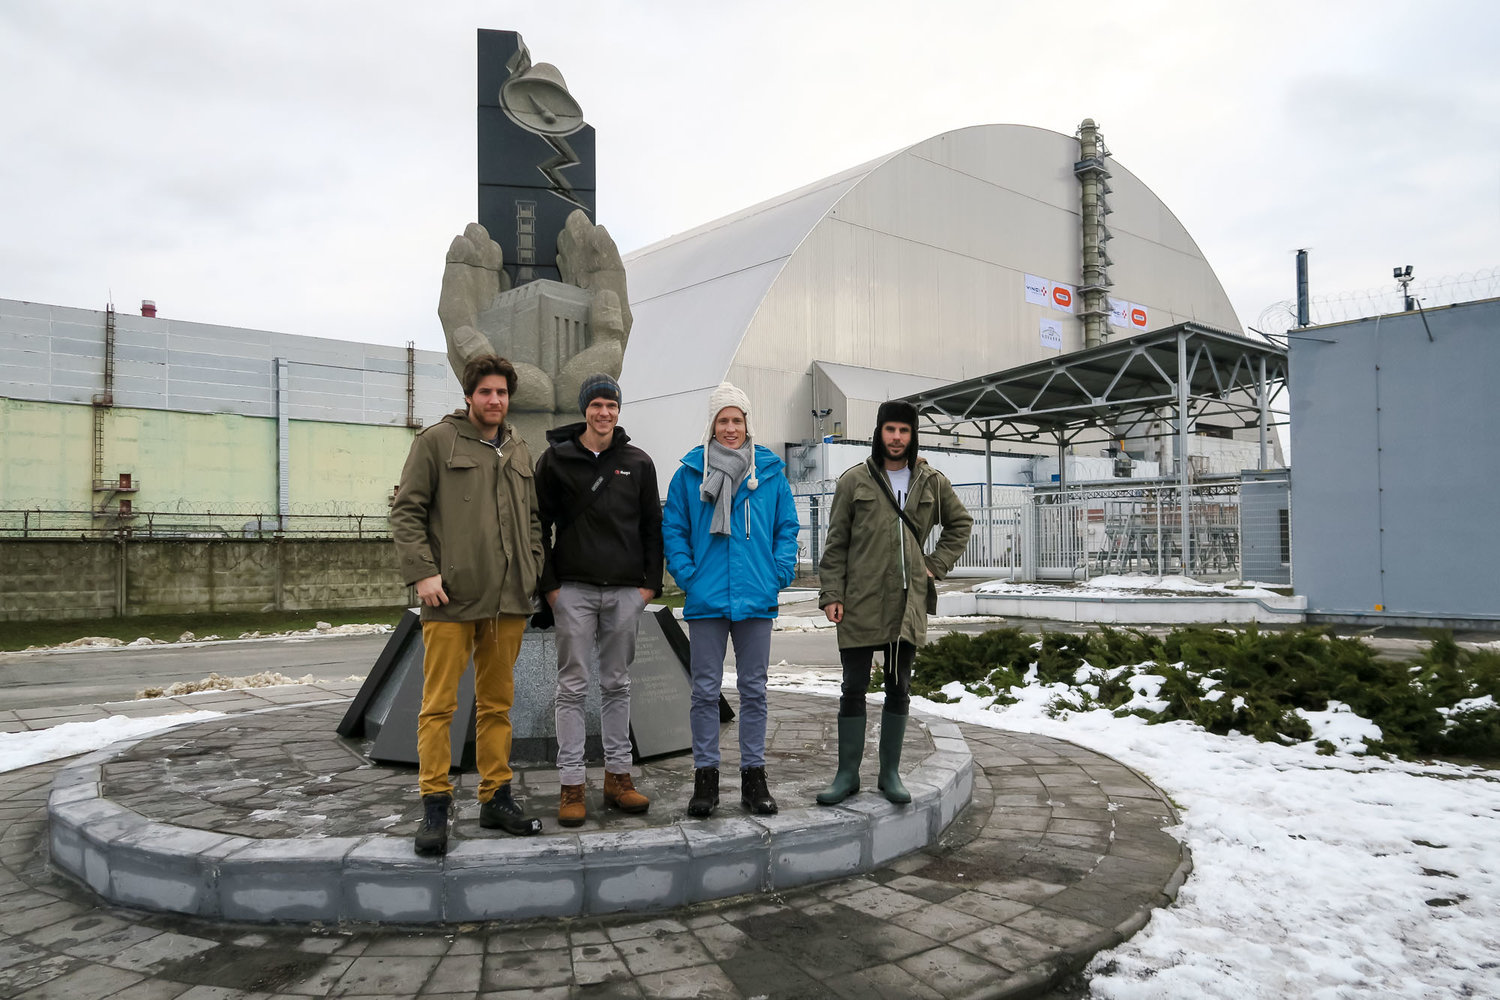 chernobyl essay essay chernobyl essay durdgereport web fc com  a photo essay and film from chernobyl cultured kiwi photography 2017 01 02 ben kepka cultured